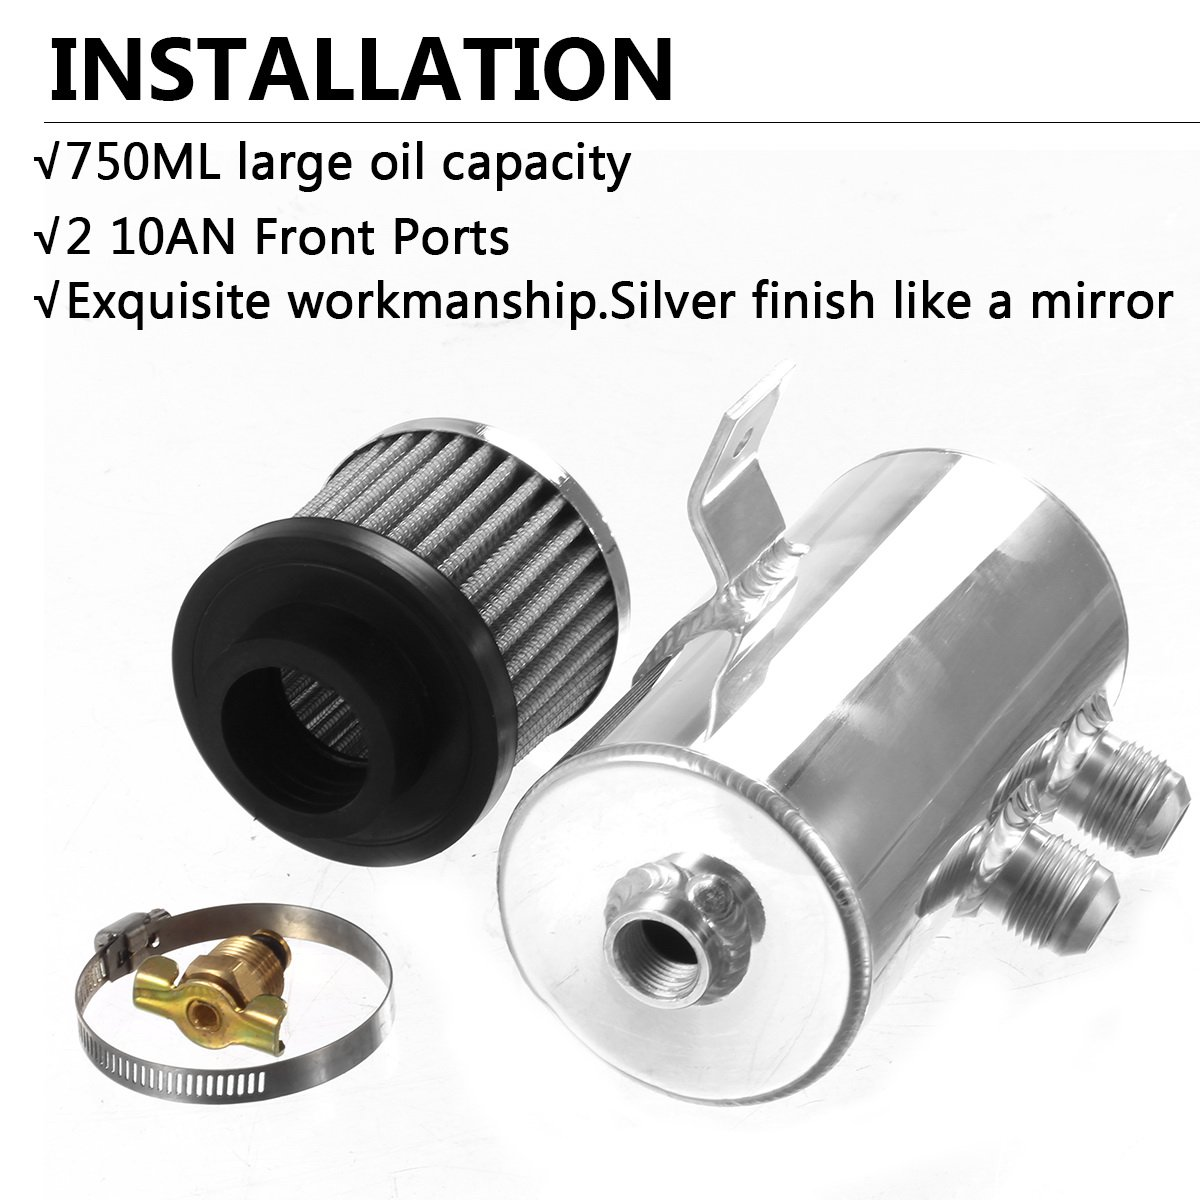 Vincos Universal Aluminum Engine Brushed Baffled Oil Catch Can Kit Coolant Overflow Tank Reservoir 750ML w/Breather Filter Kit Cylinder 2 Front Ports 10AN (Silver) by Vincos (Image #4)